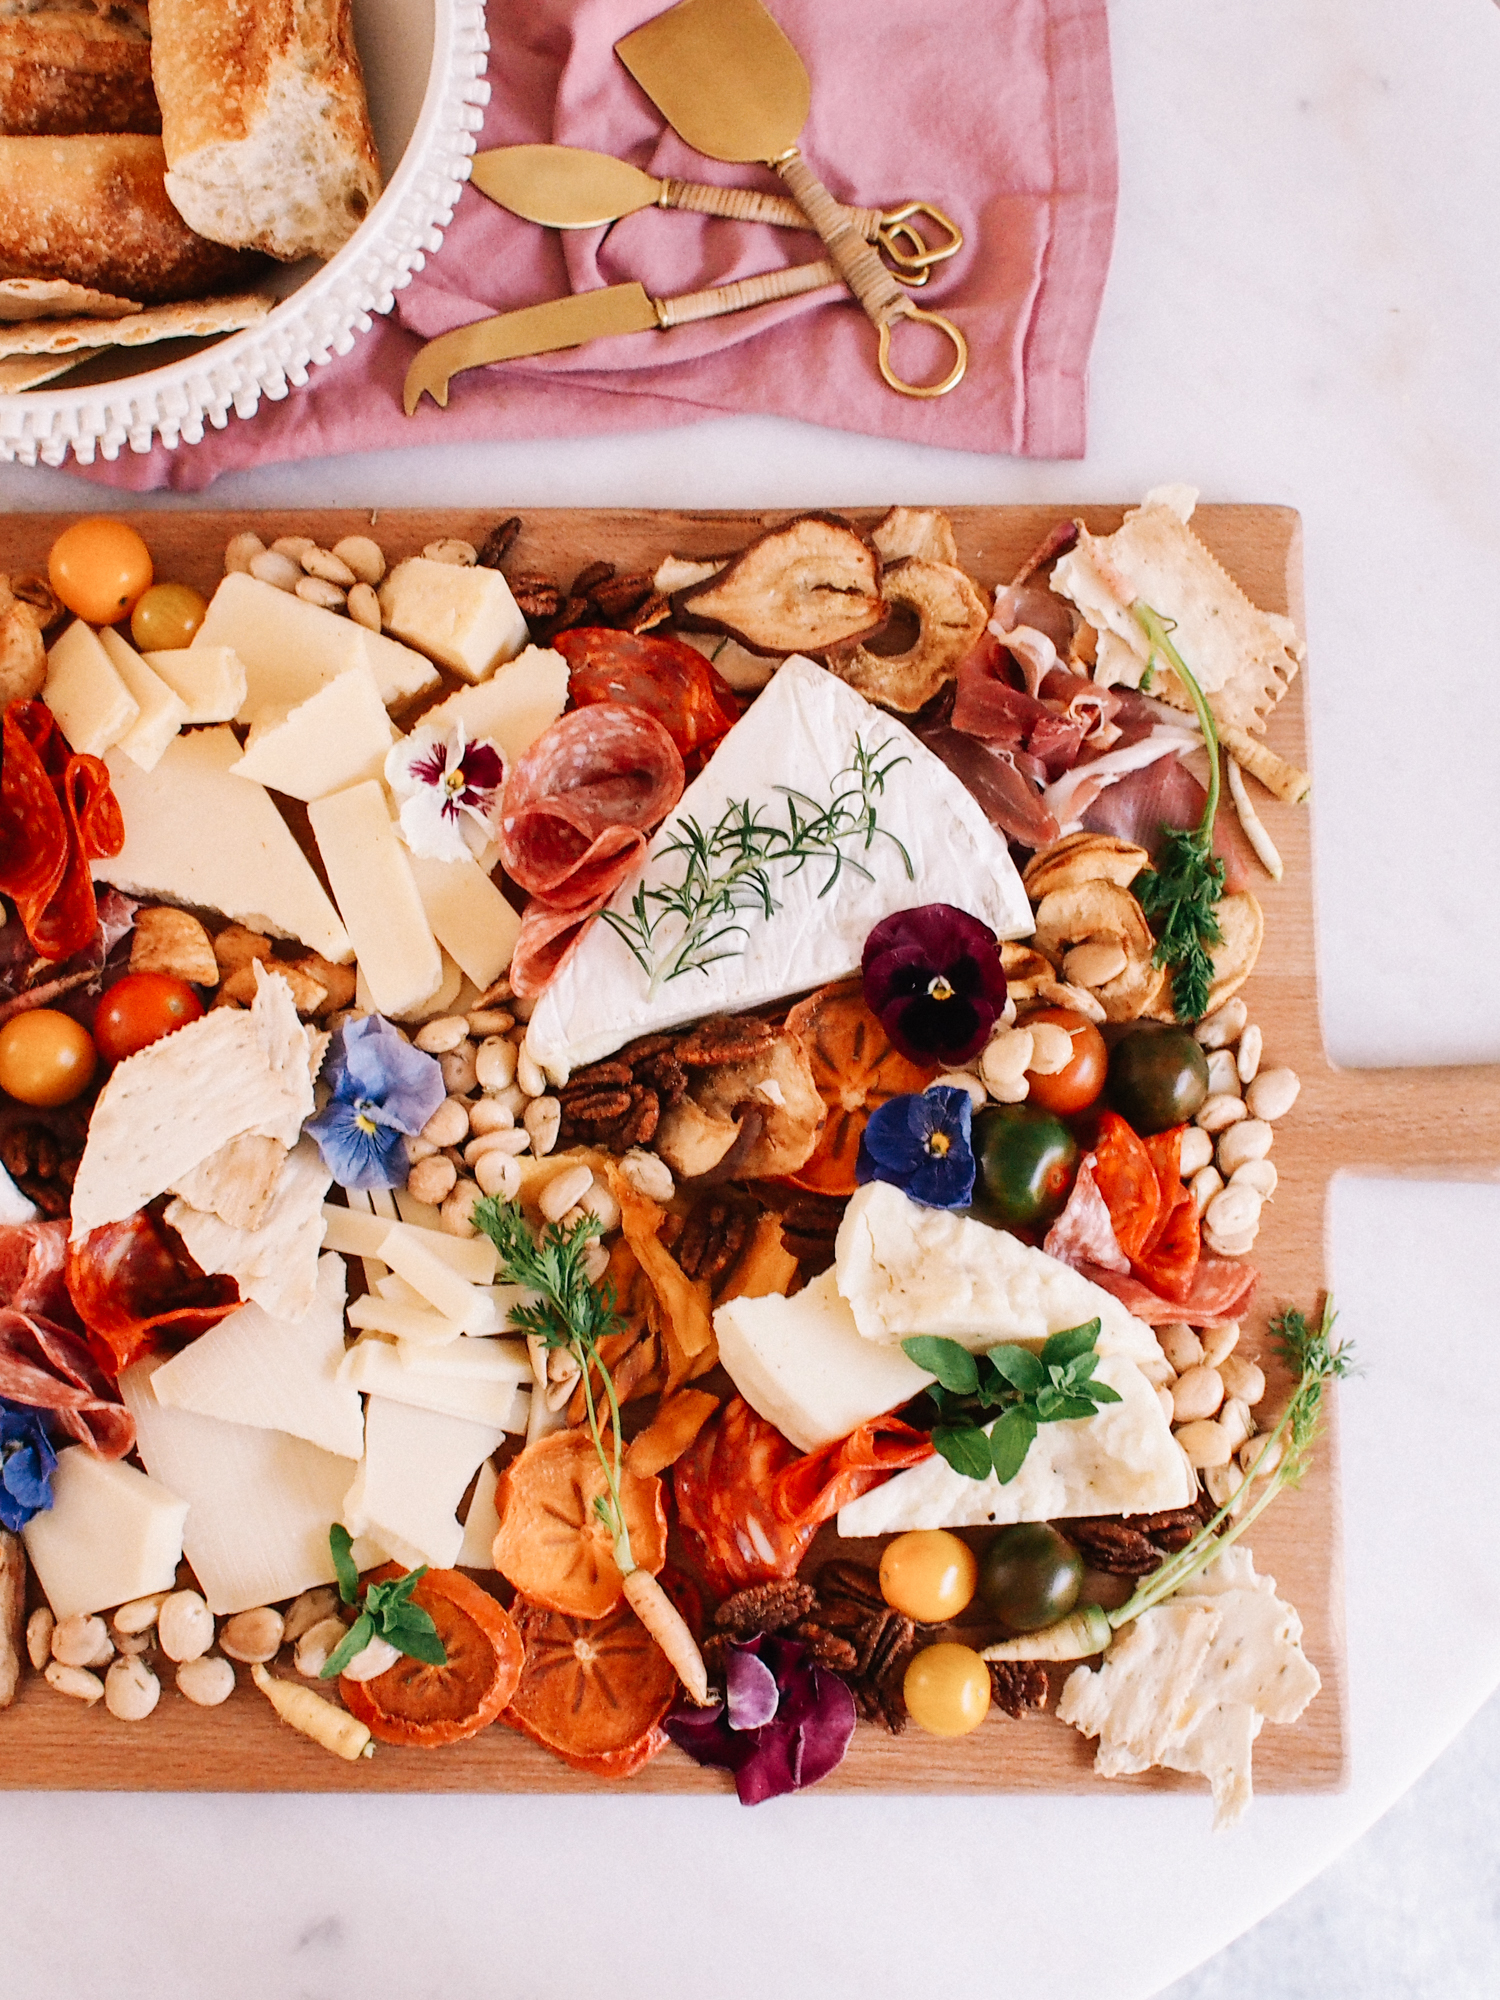 Steps to Make a Beautiful Cheese Board | A Fabulous Fete